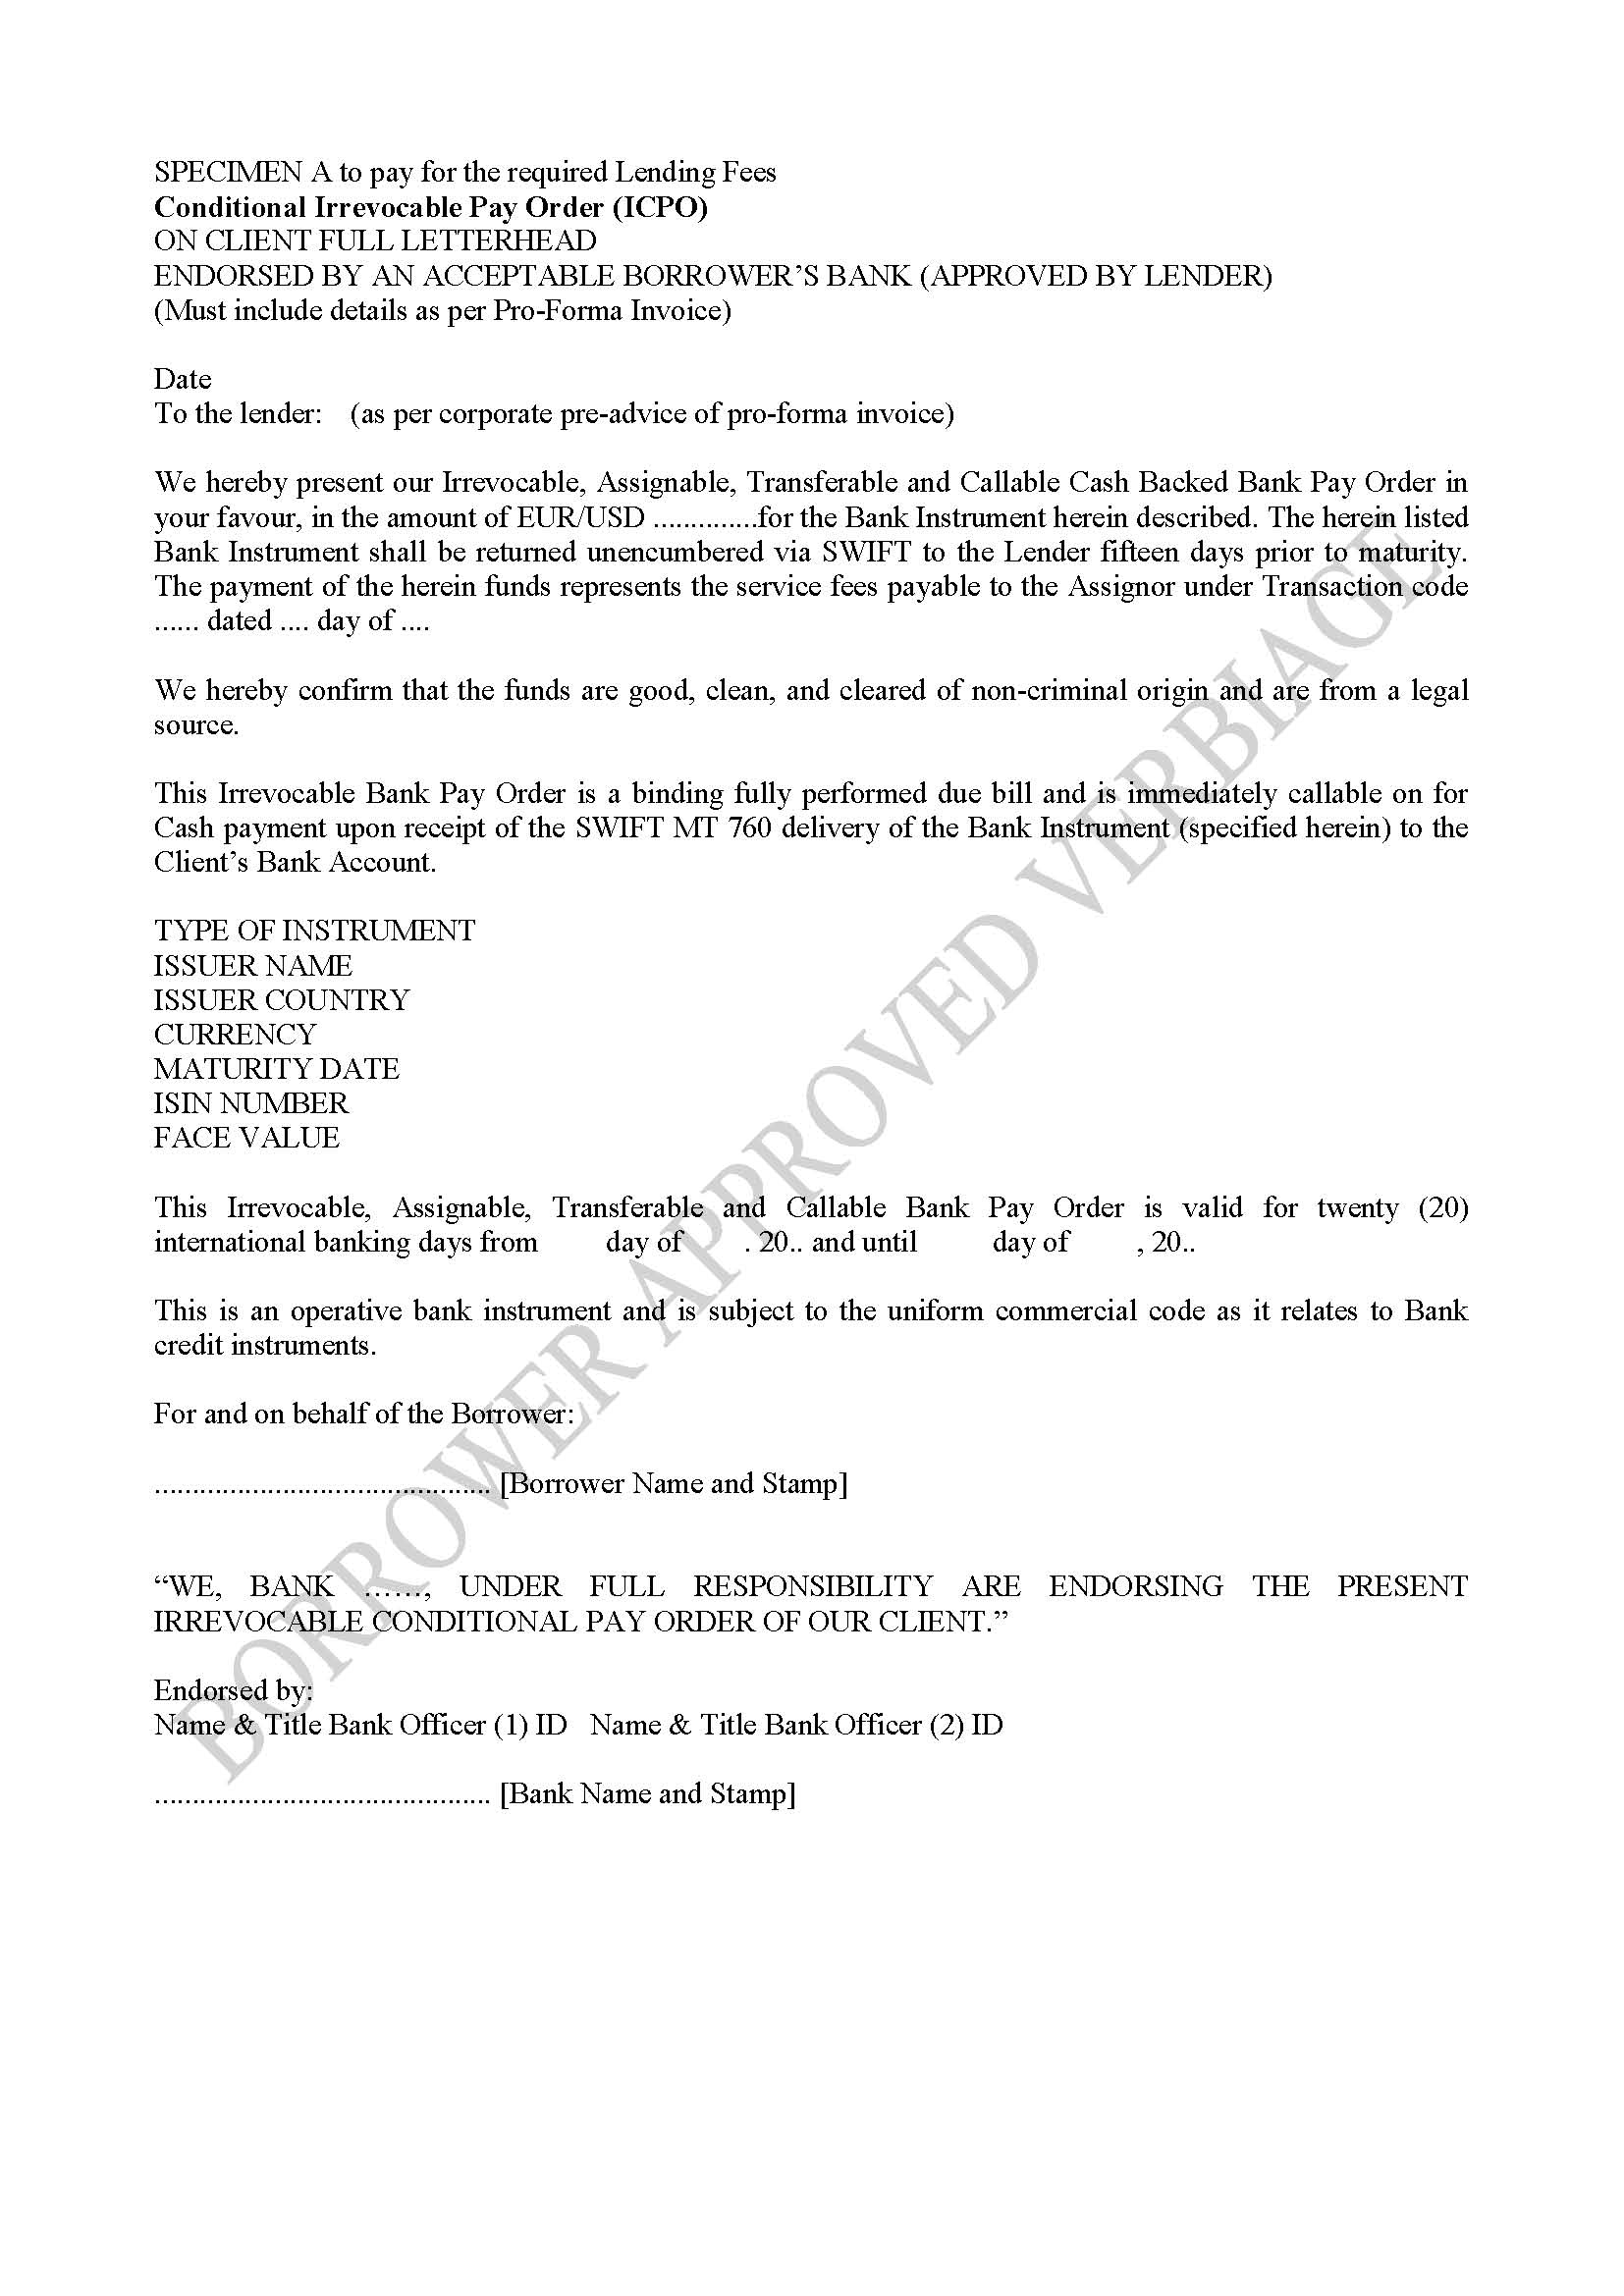 BUSINESS SUPPORT CONTRACT (ALL SPECIMEN)_Seite_1